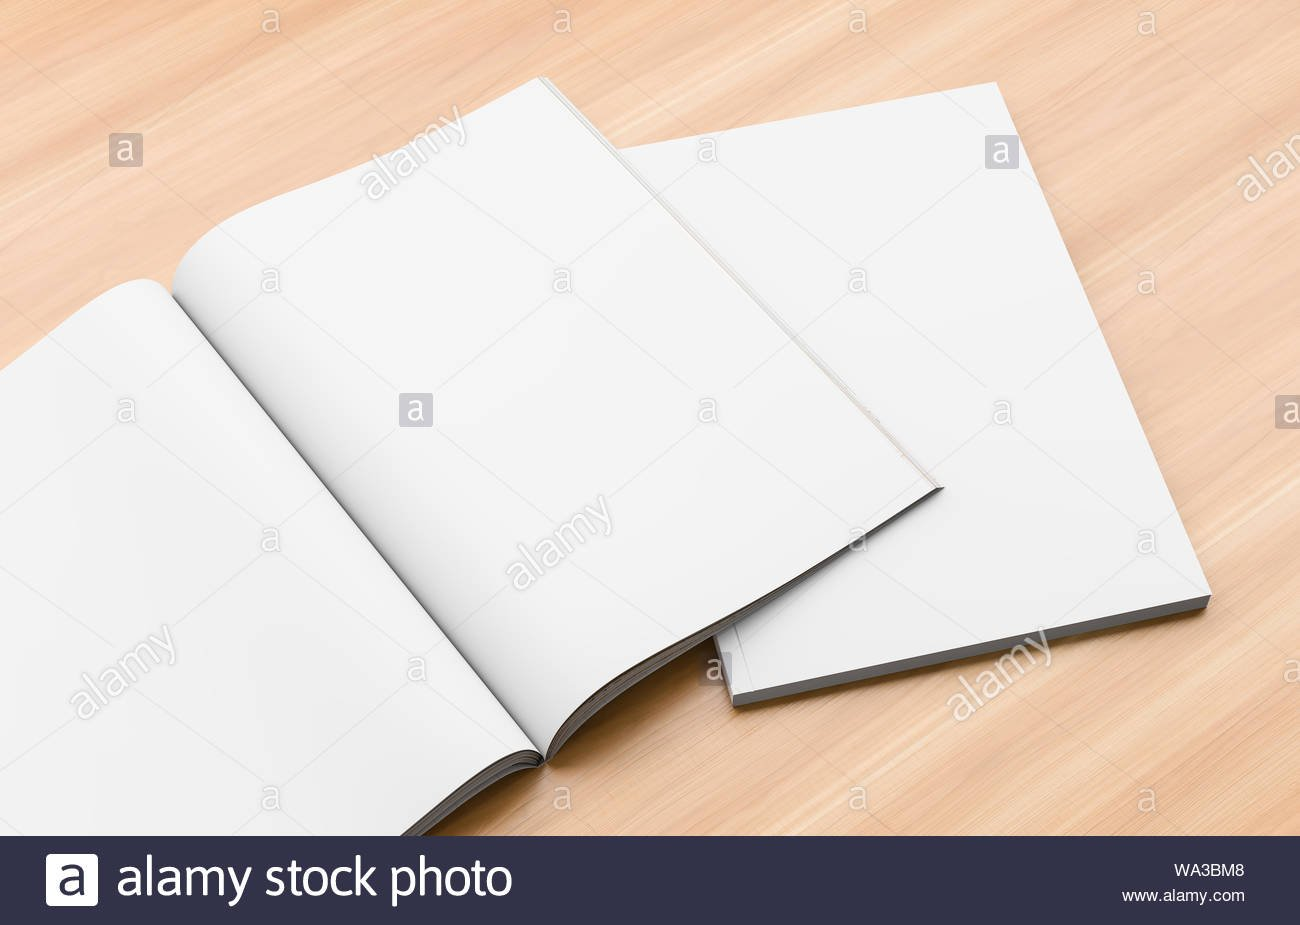 Realistic magazine brochure book or catalogue mock up on wooden 1300x925